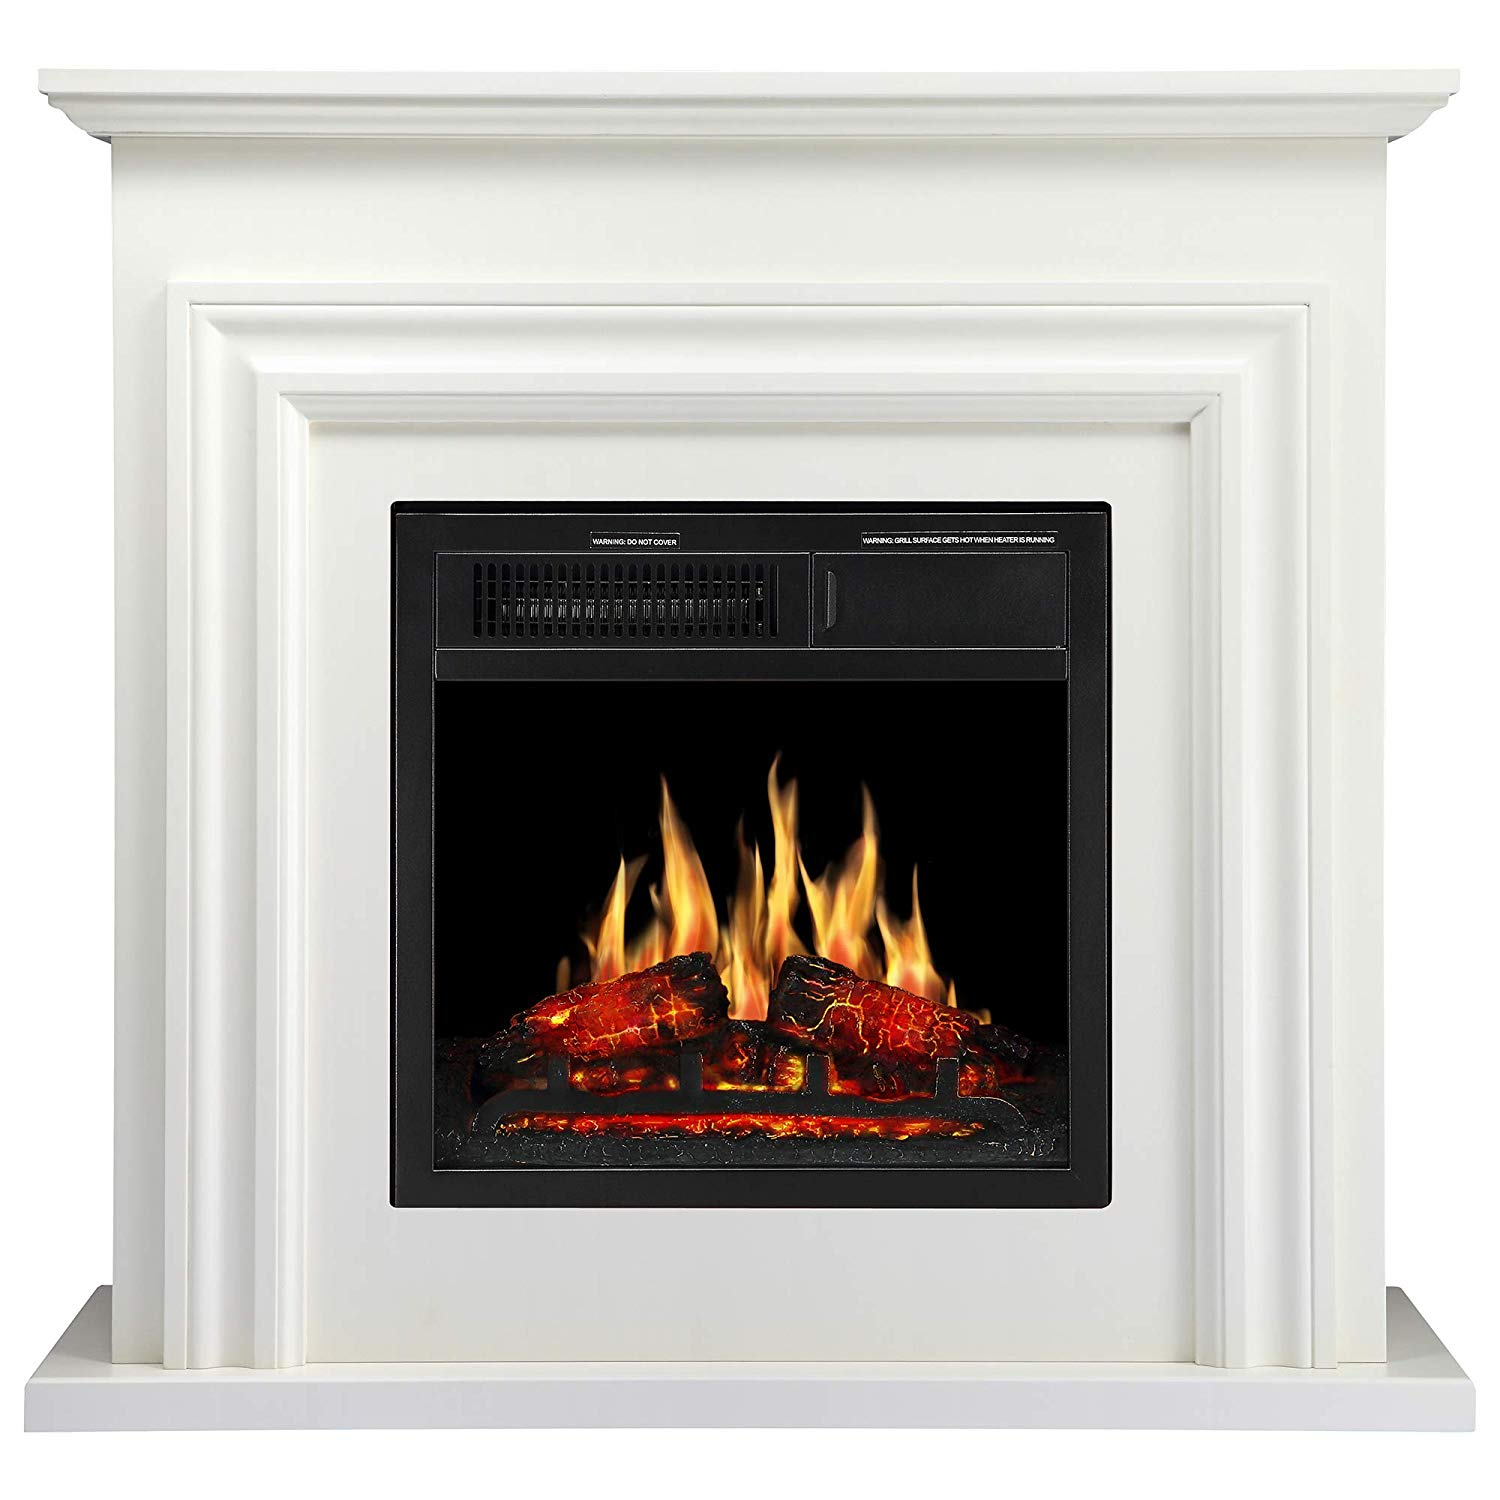 Jamfly 36 Wood Electric Fireplace Mantel Package Freestanding - Best Electric FirePlaces